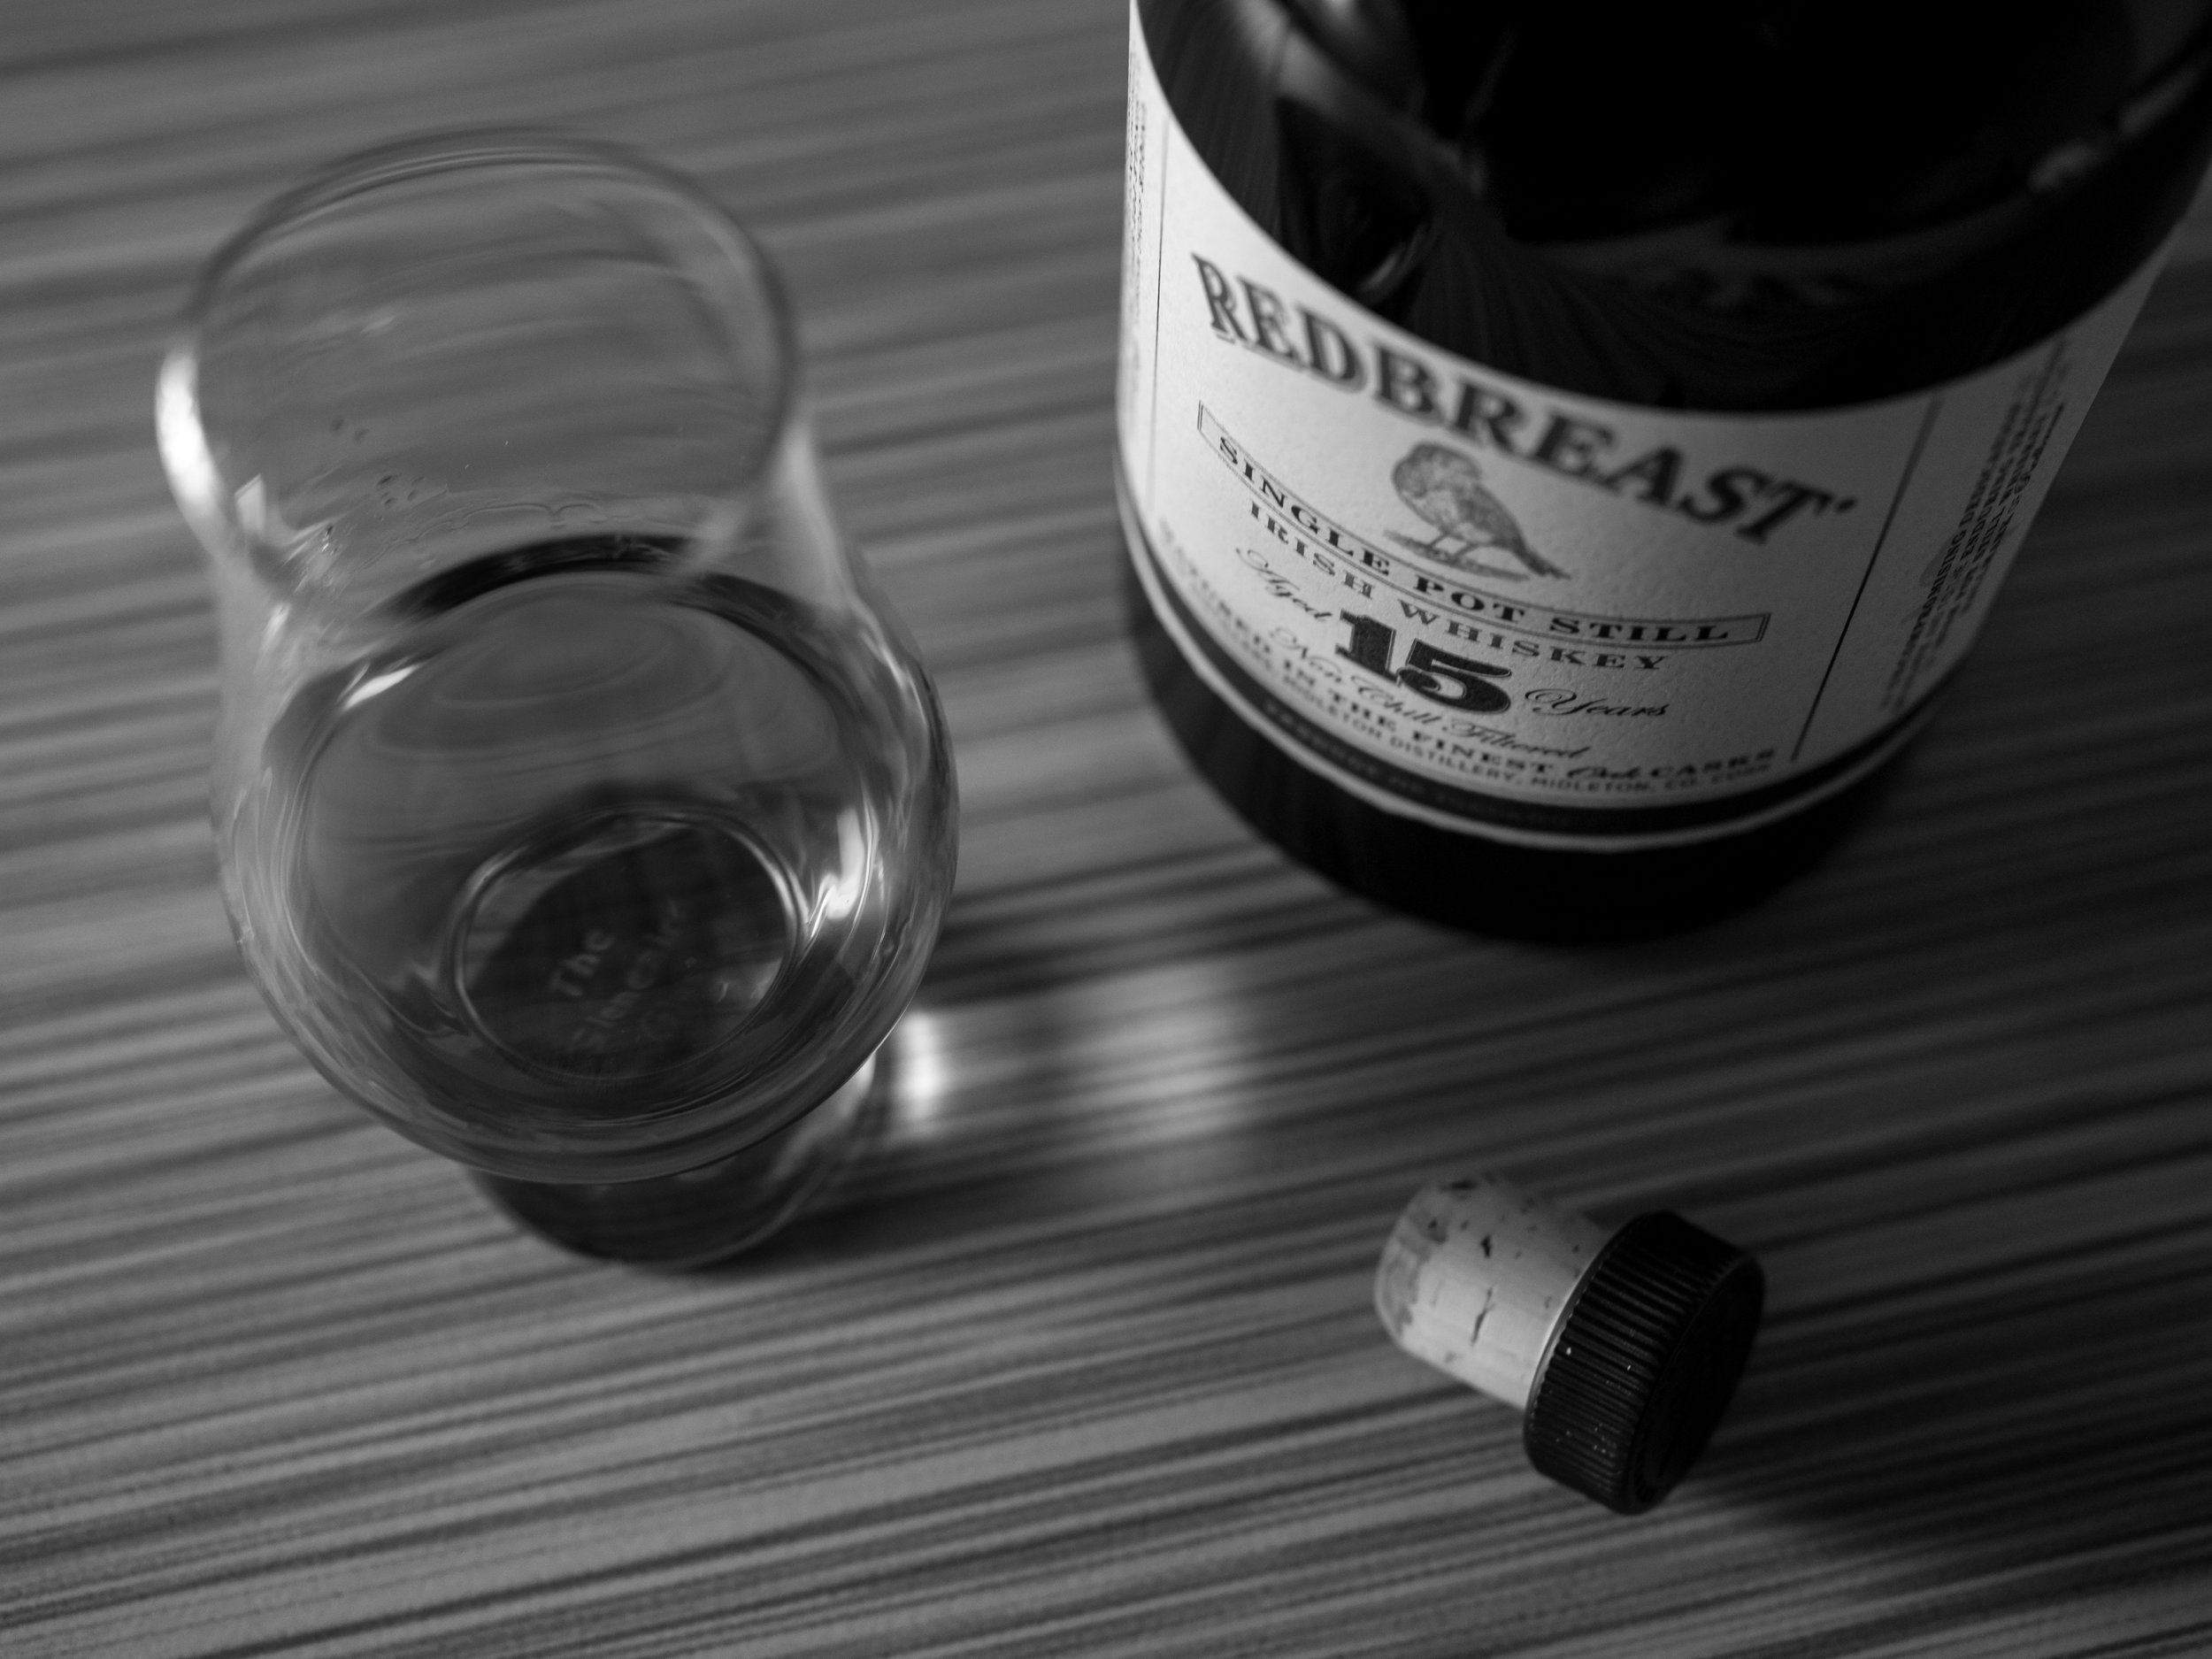 Musings by the Glass - Ode to Saint Patrick - Redbreast 15 year single pot still whiskey from Ireland